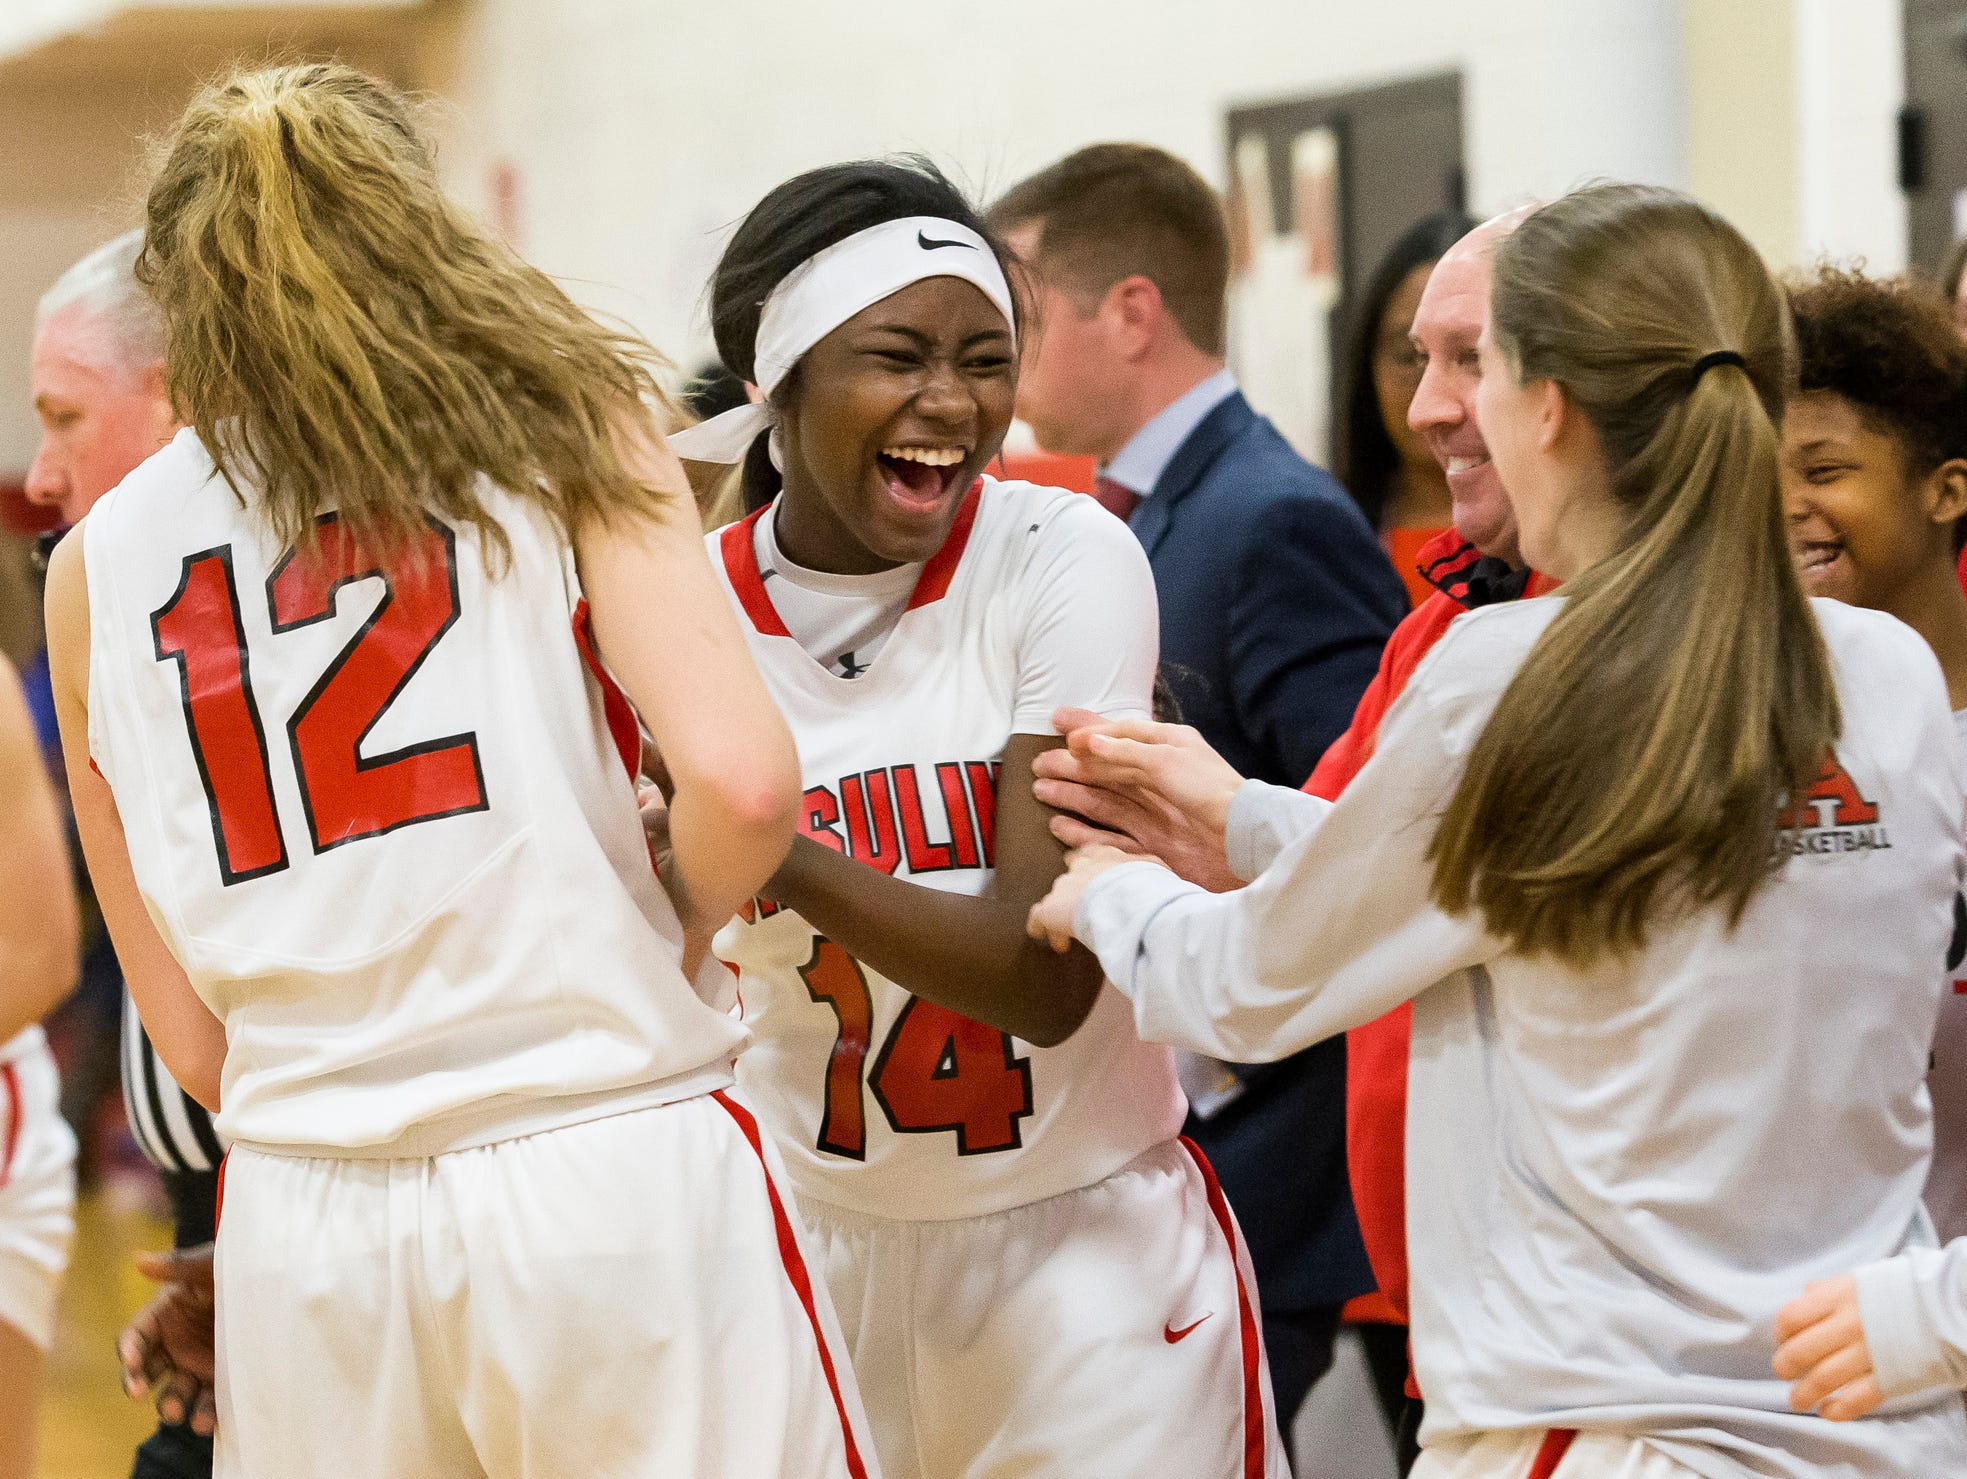 Ursuline's Kryshell Gordy (No. 14) laughs with her teammates after a missing a shot in the second half of Ursuline's 50-40 win over Sanford at Ursuline Academy on Thursday night.